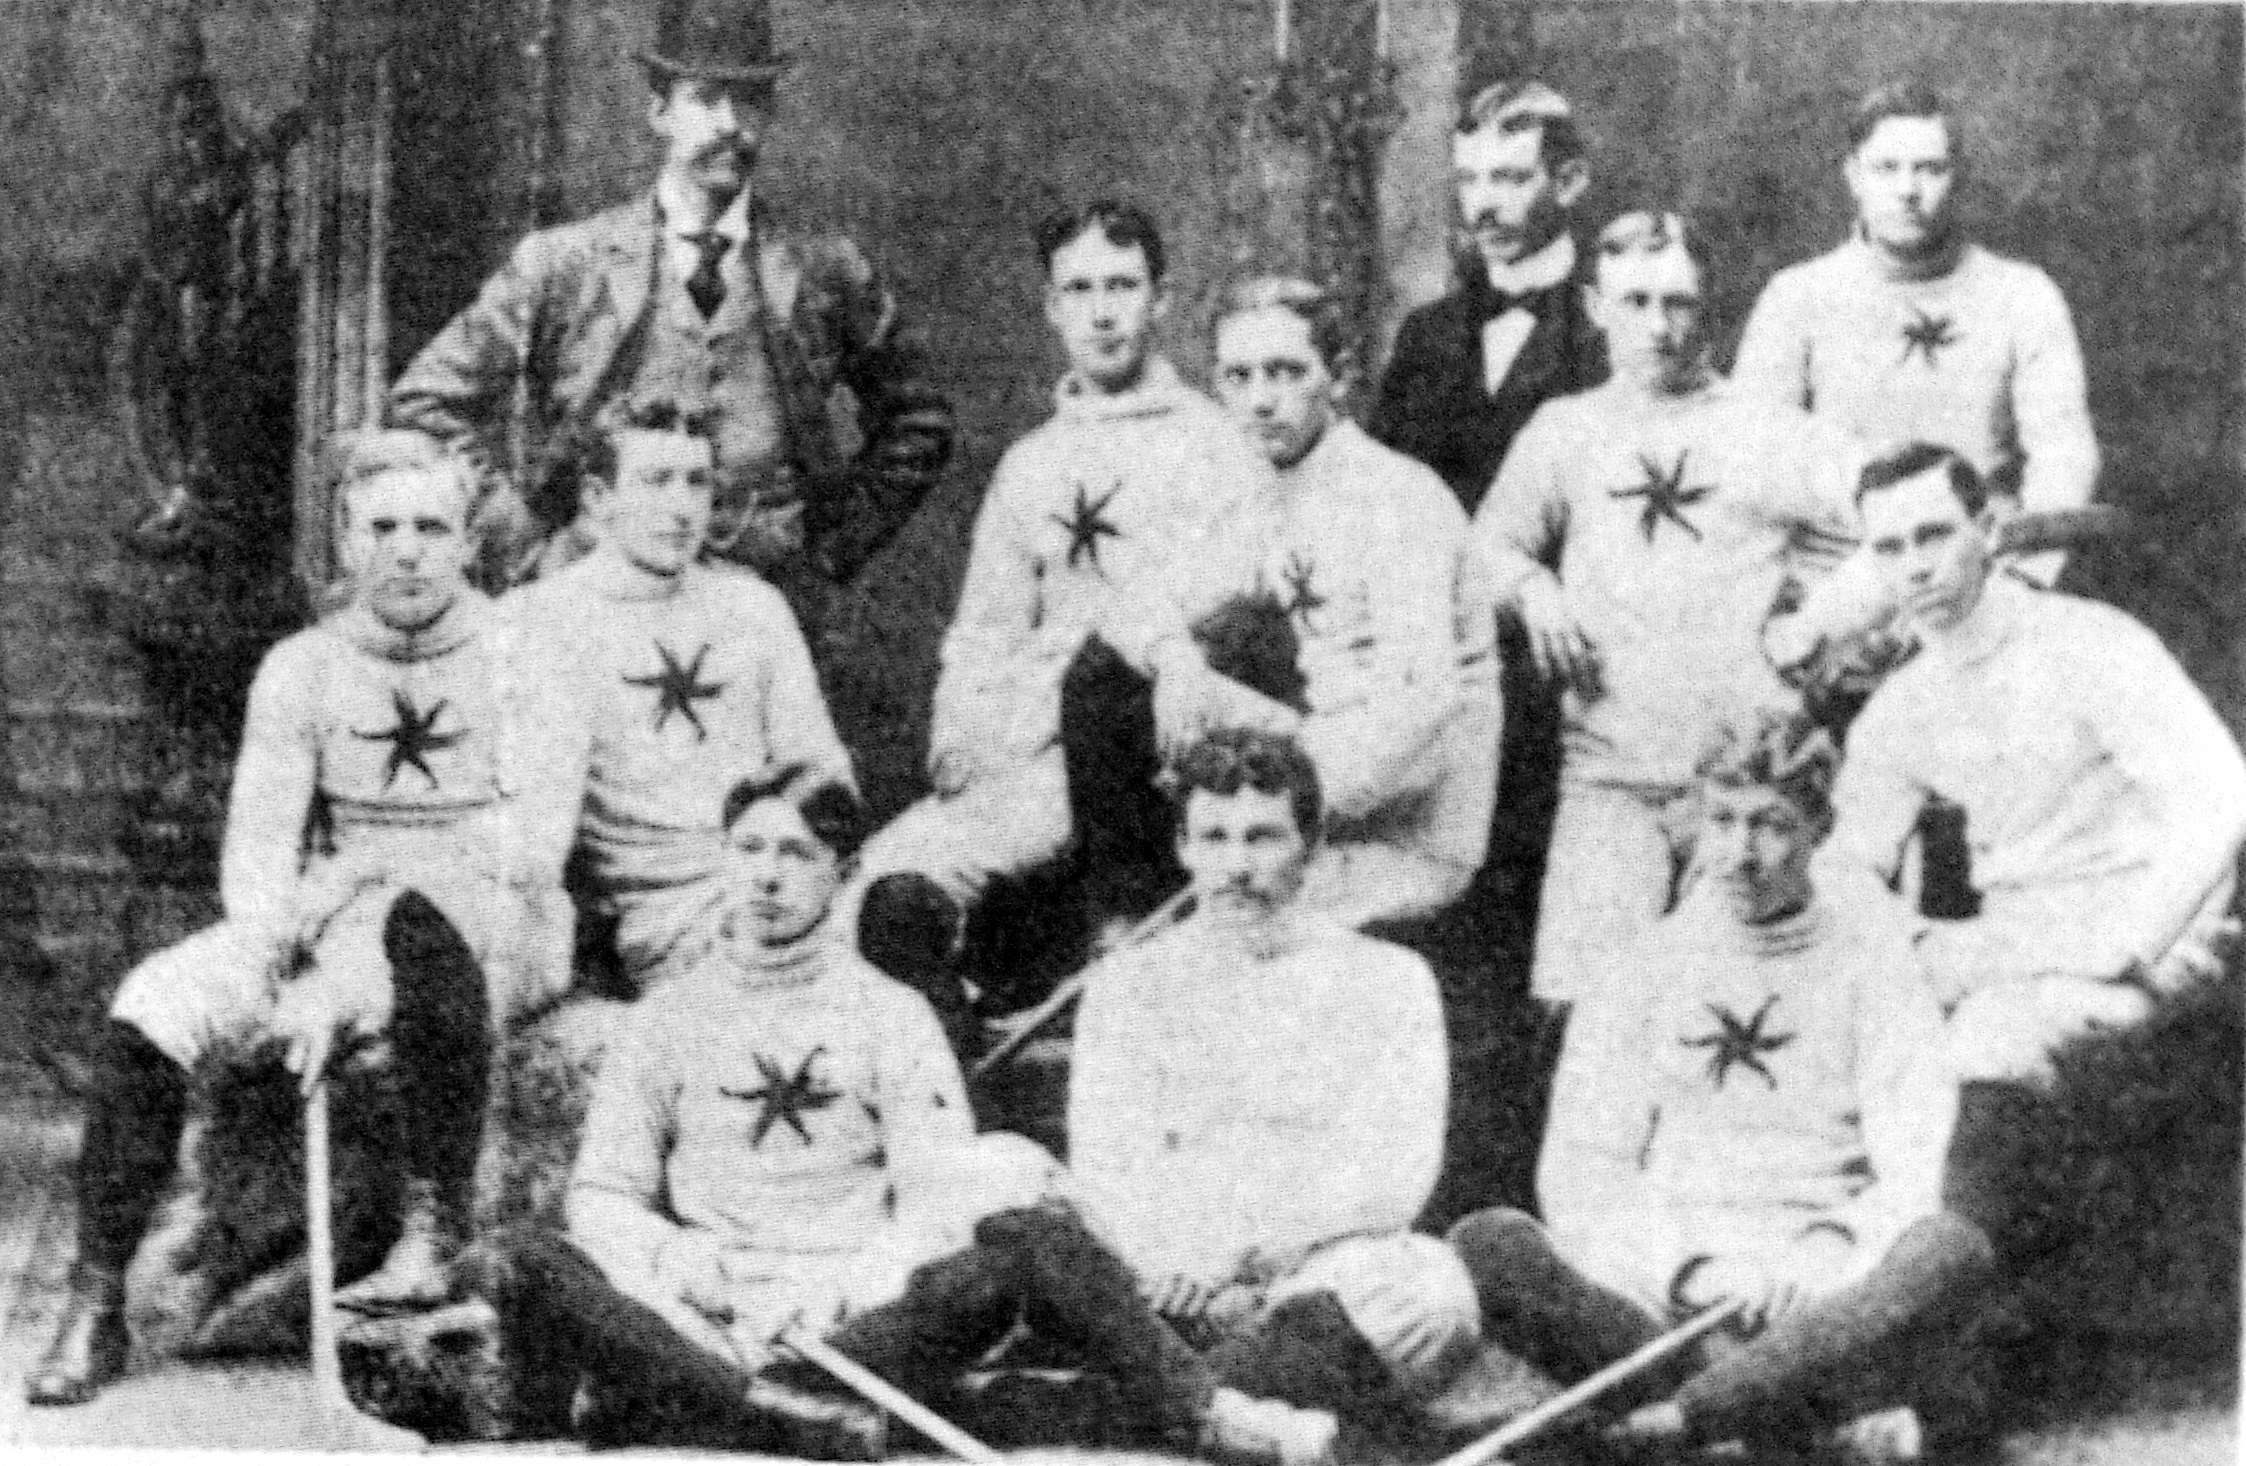 Ottawa_hockey_club_1895.JPG